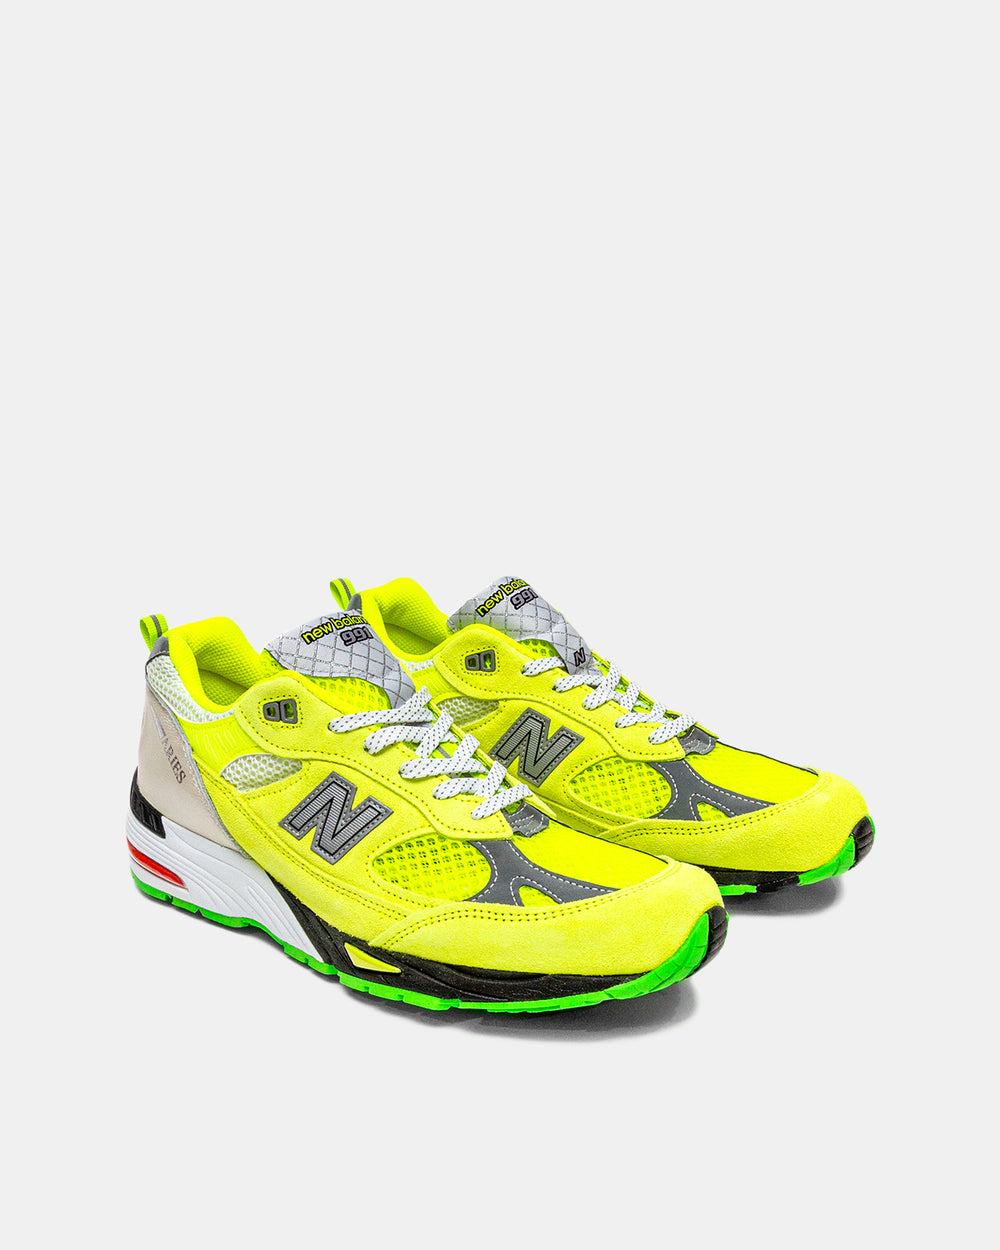 New Balance - New Balance x Aries 991 (Neon Yellow | Silver)